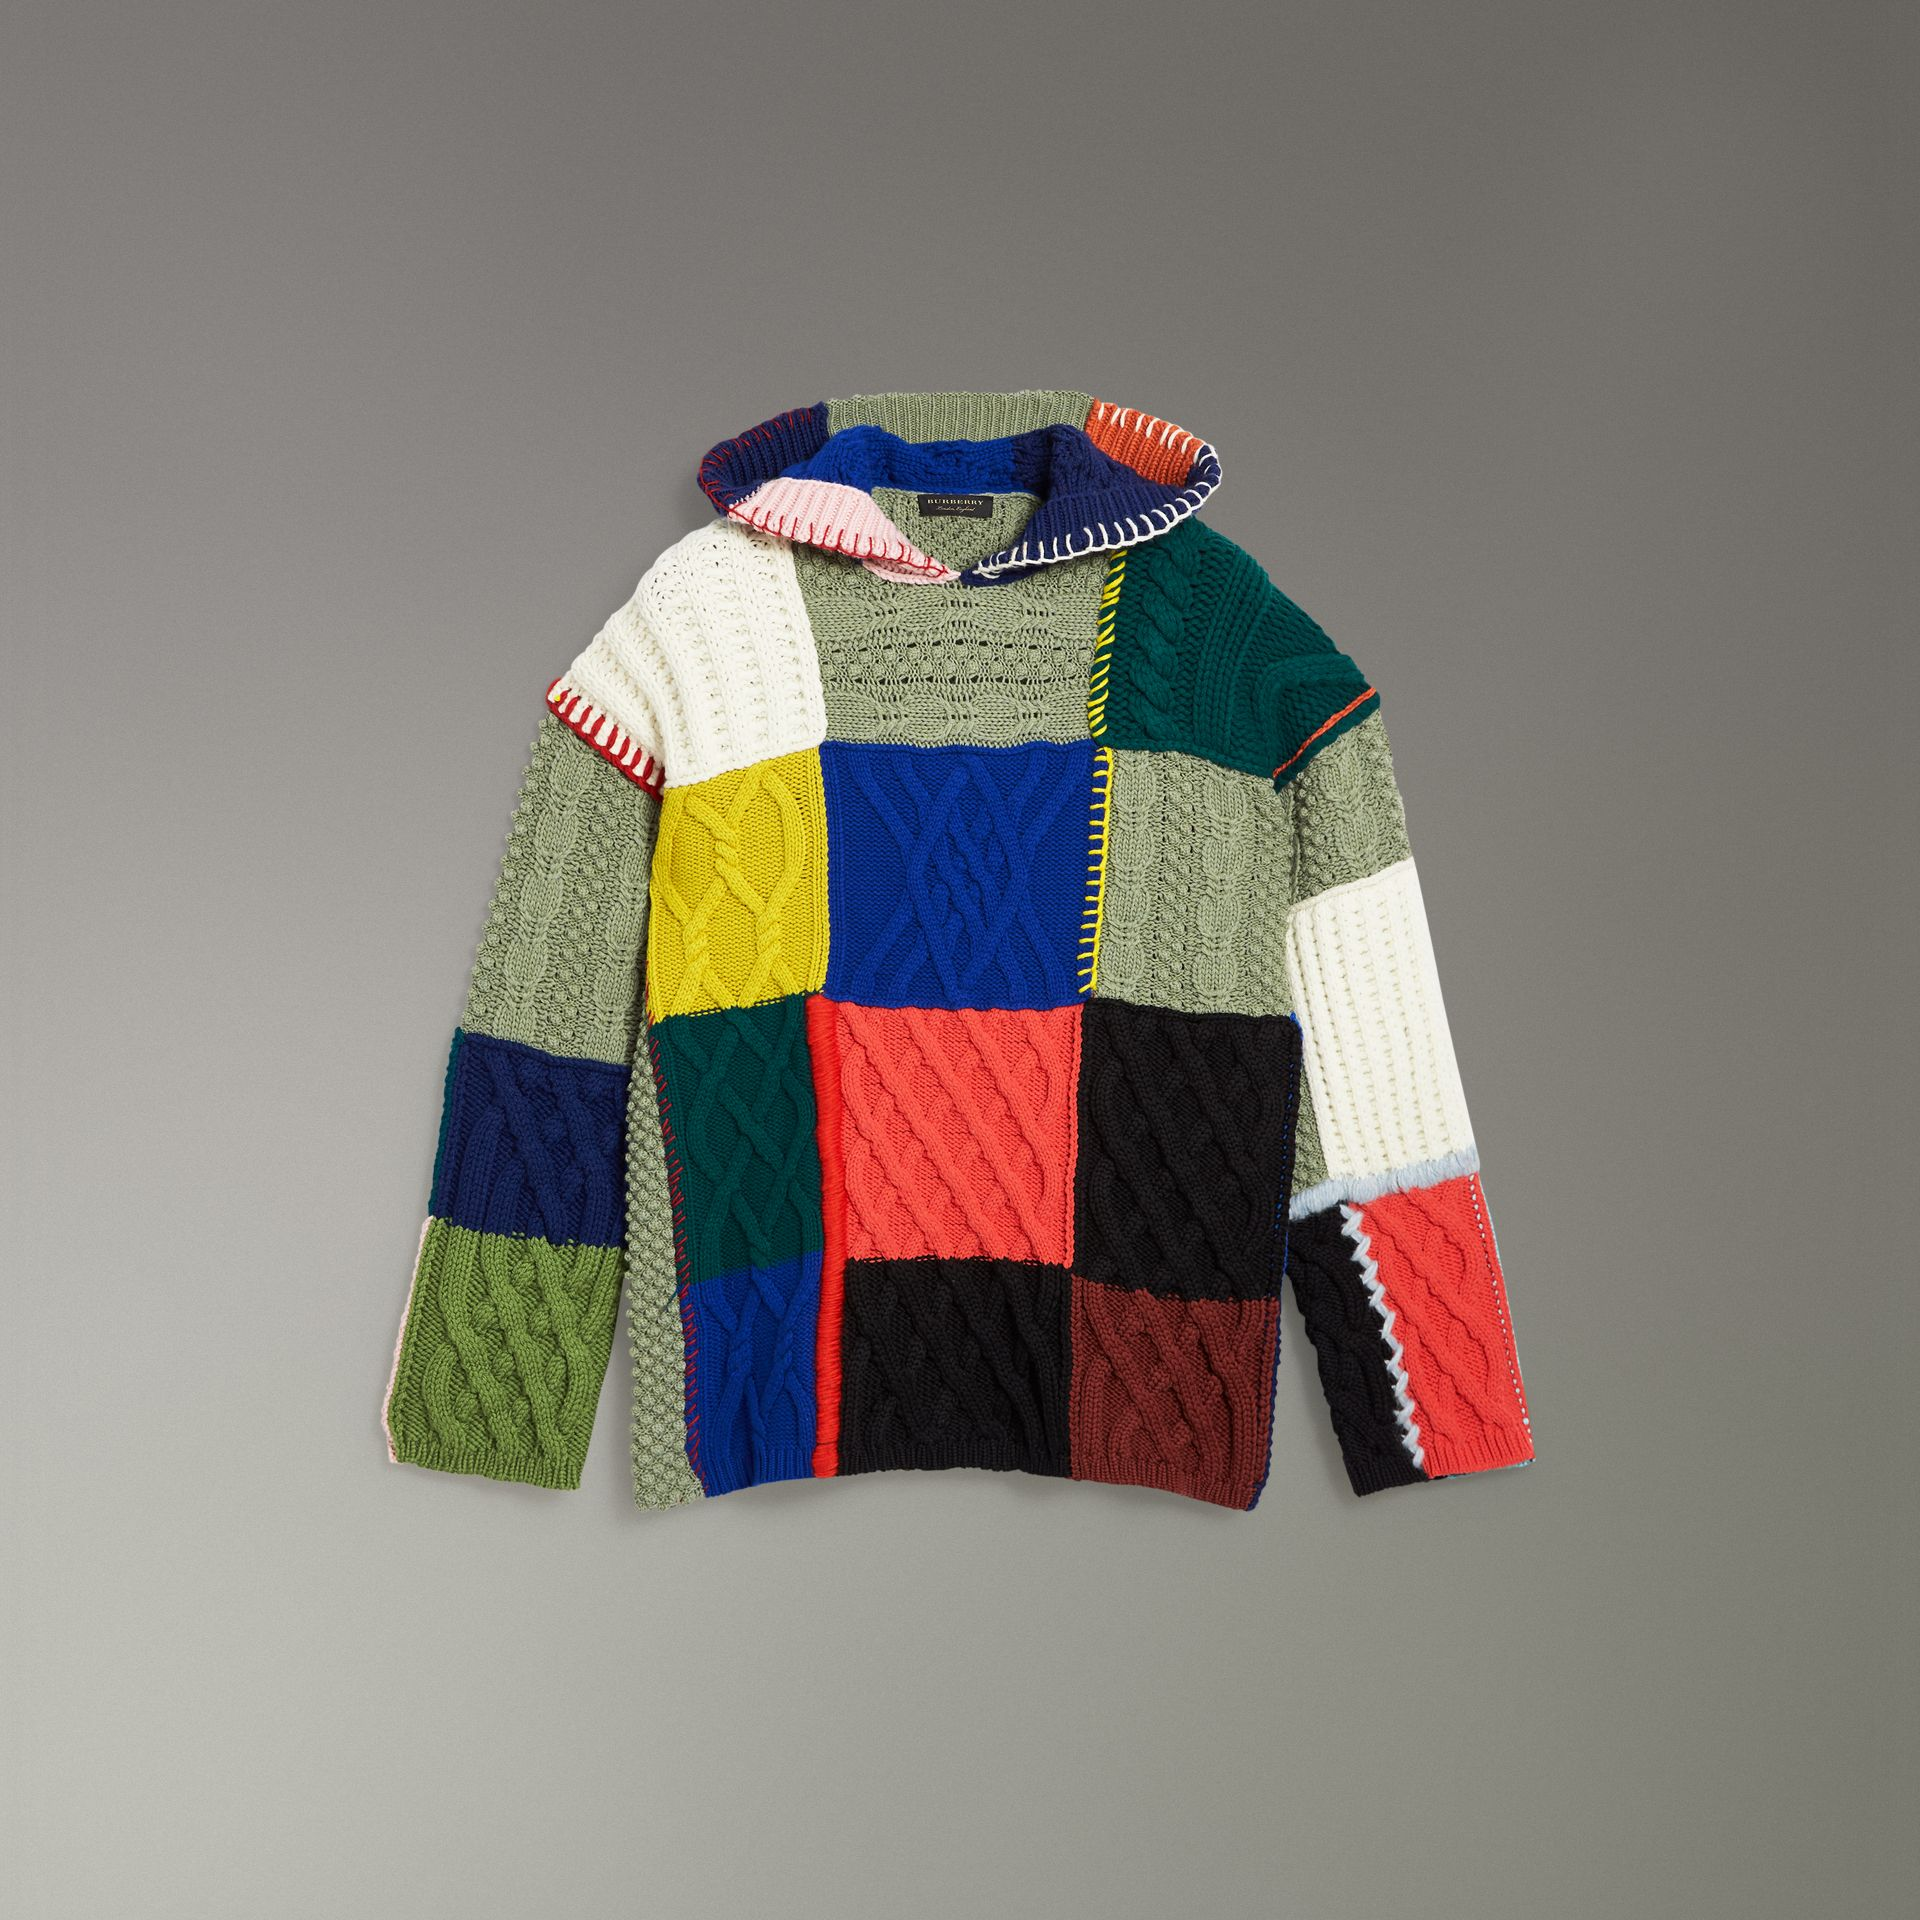 Patchwork Wool Cotton Blend Hoodie in Multicolour - Women | Burberry Hong Kong - gallery image 3